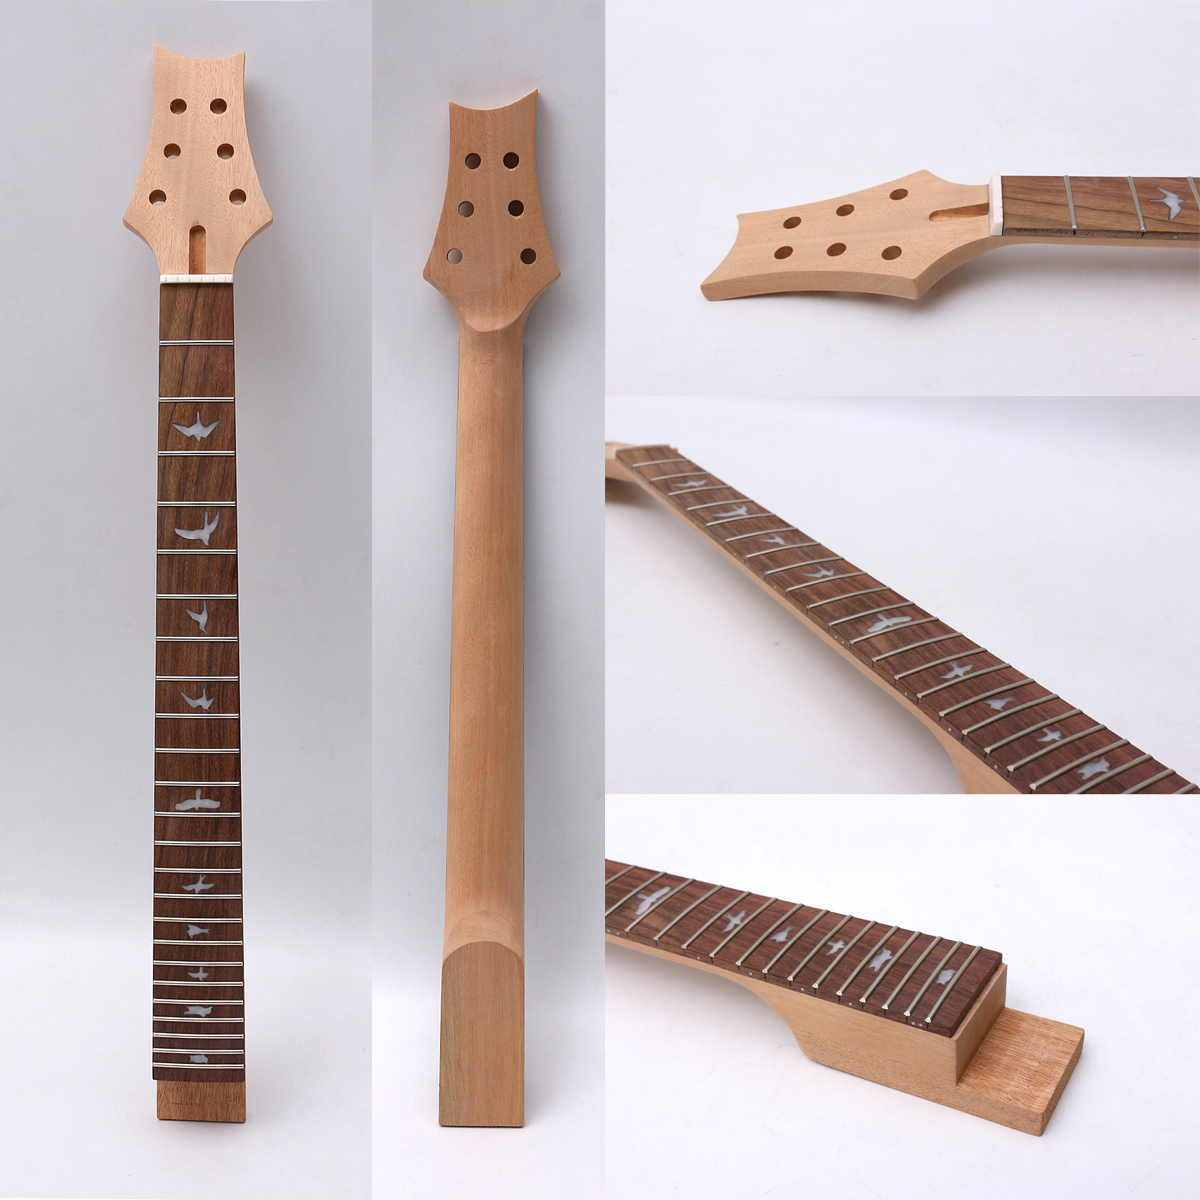 Fit Diy Electric Guitar Neck 24fret 25.5''inch 648mm Mahogany+Rosewood Fingerboard Guitar Project Unfinished